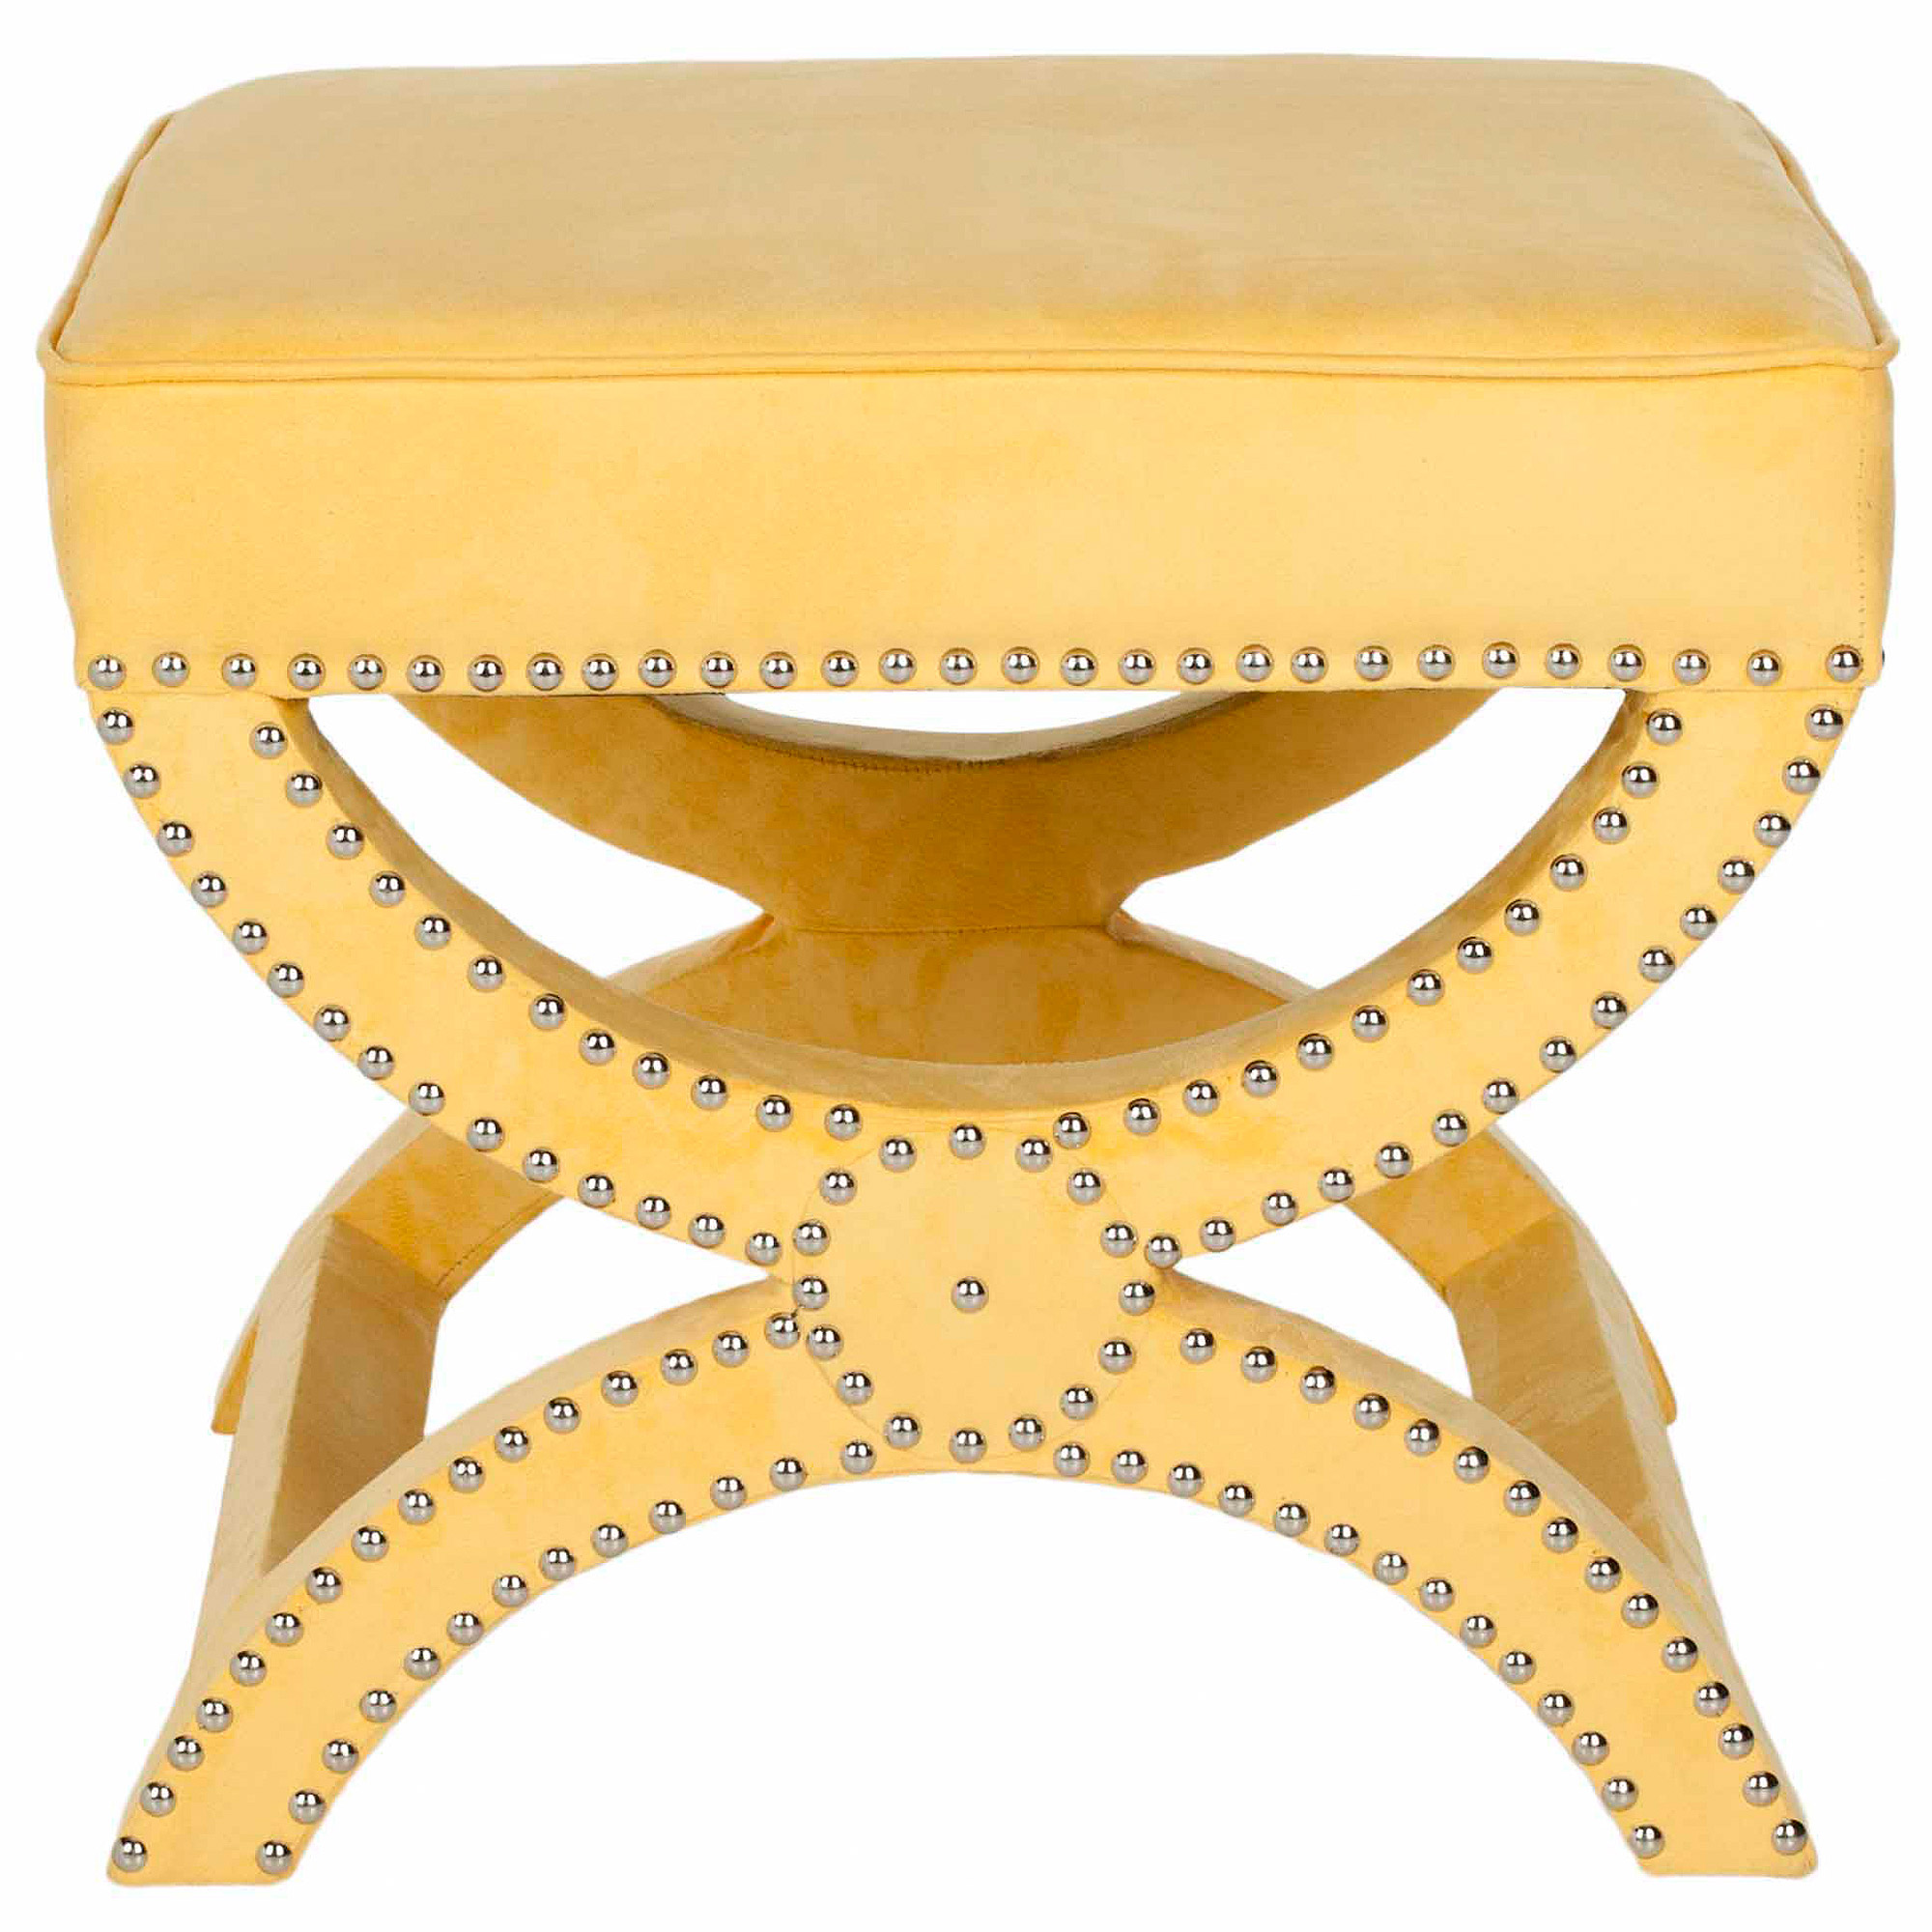 Safavieh Mystic Ottoman with Silver Nail Heads, Multiple Colors